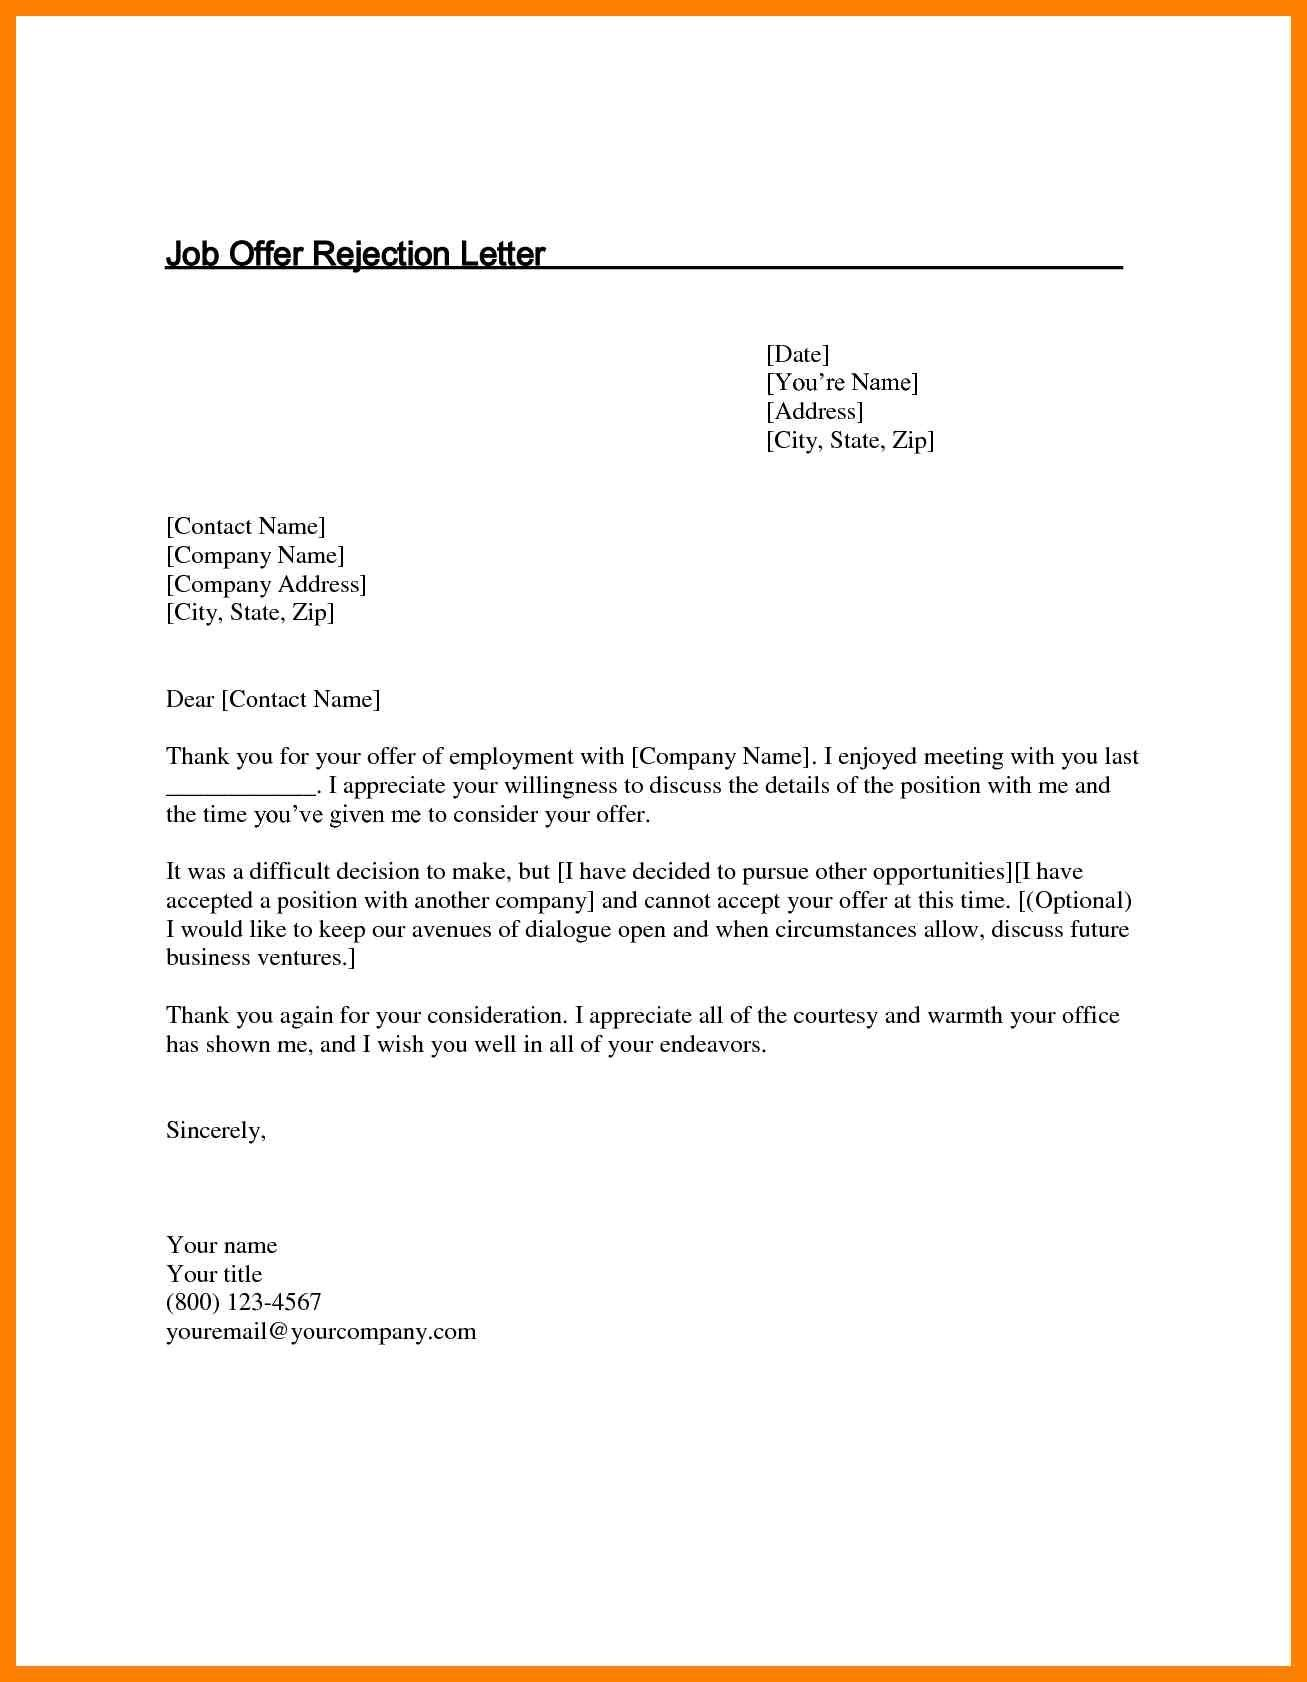 Valid Reply Letter For Job Offer Sample You Can Download For Full Letter Resume Template Here Http Newspb Or Job Rejection Letter After Interview Job Offer